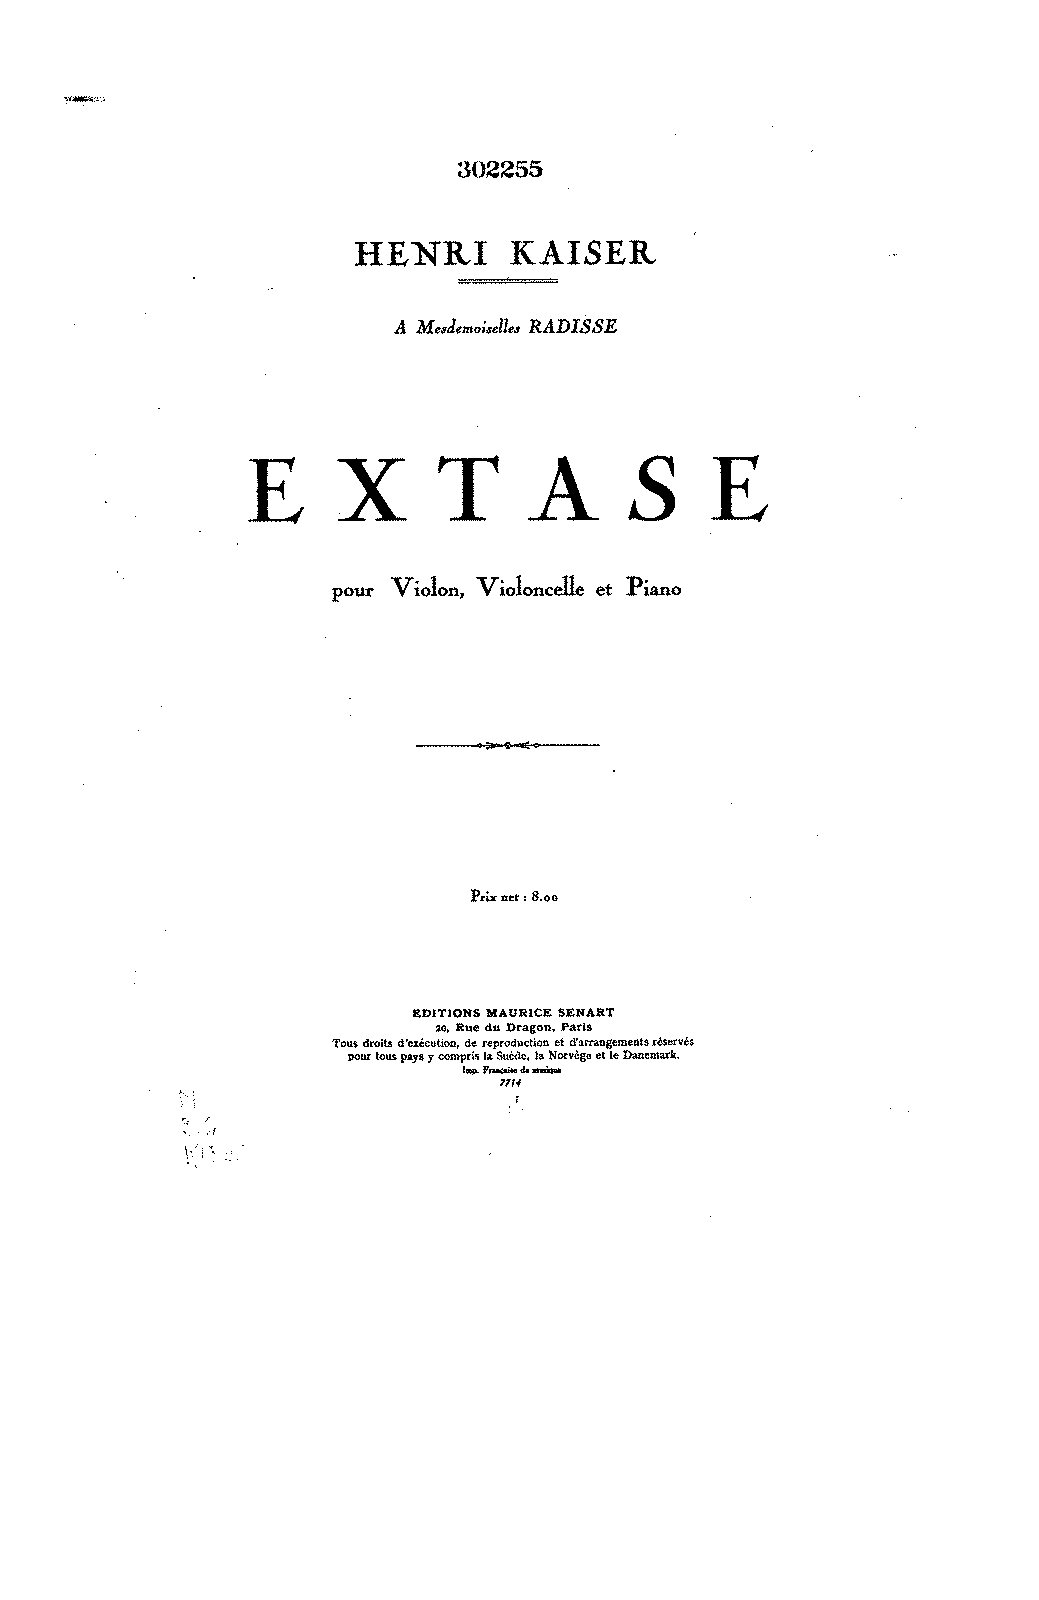 PMLP300265-Kaiser - Extase for violin cello and piano score.pdf